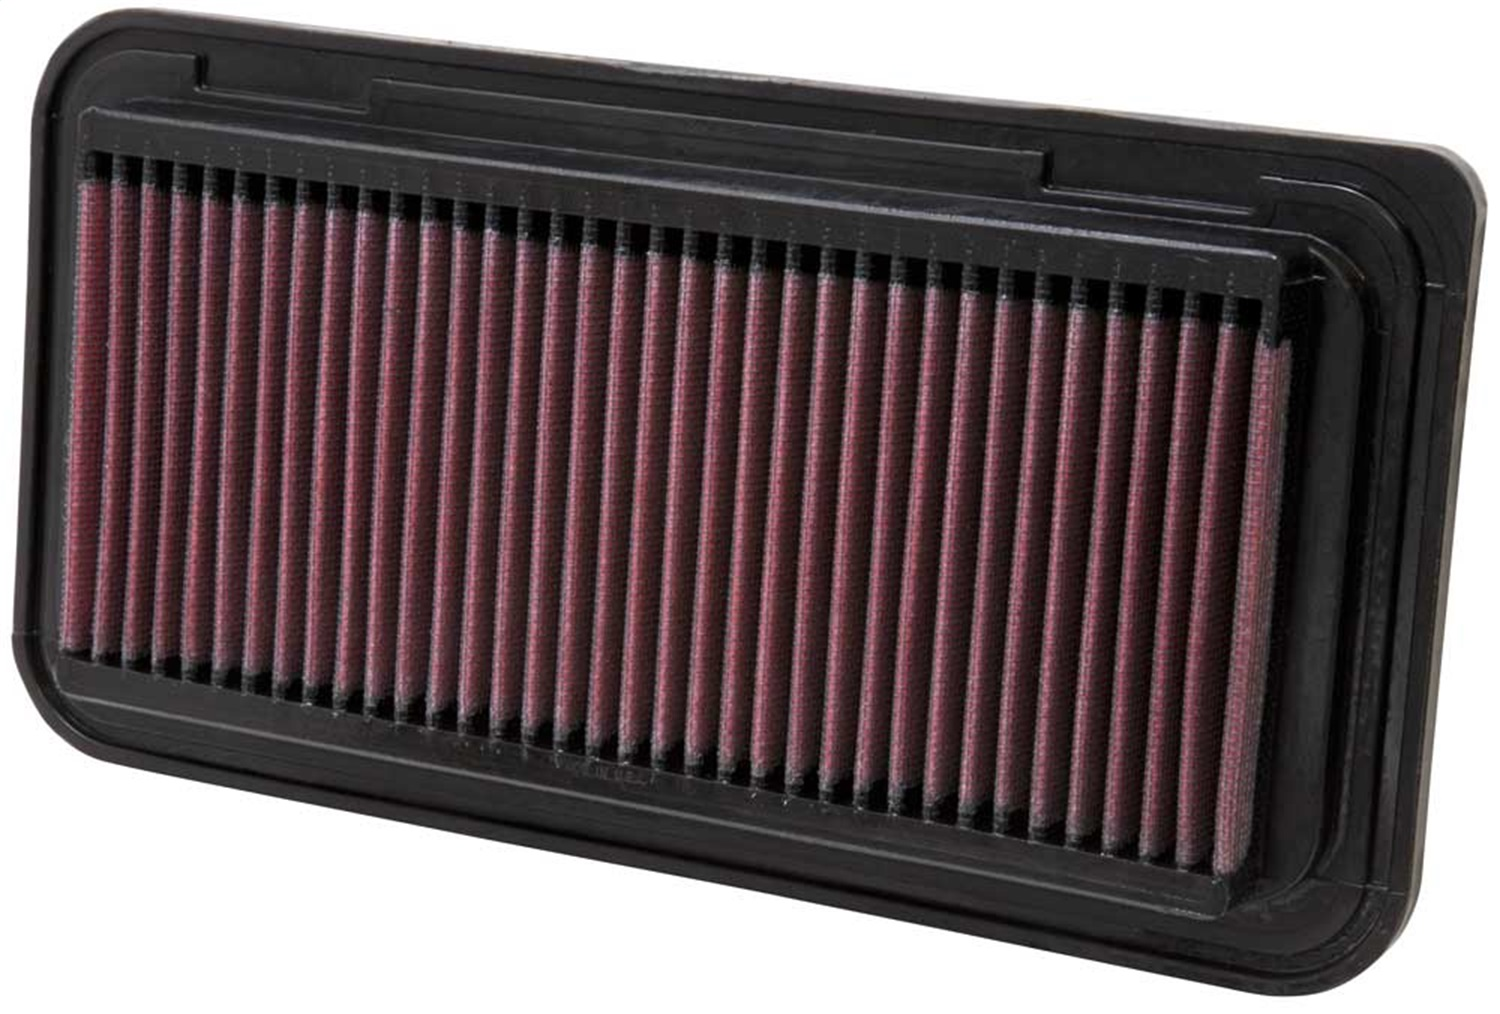 K&N Filters 33-2300 Air Filter Fits 05-14 BRZ FR-S tC 33-2300